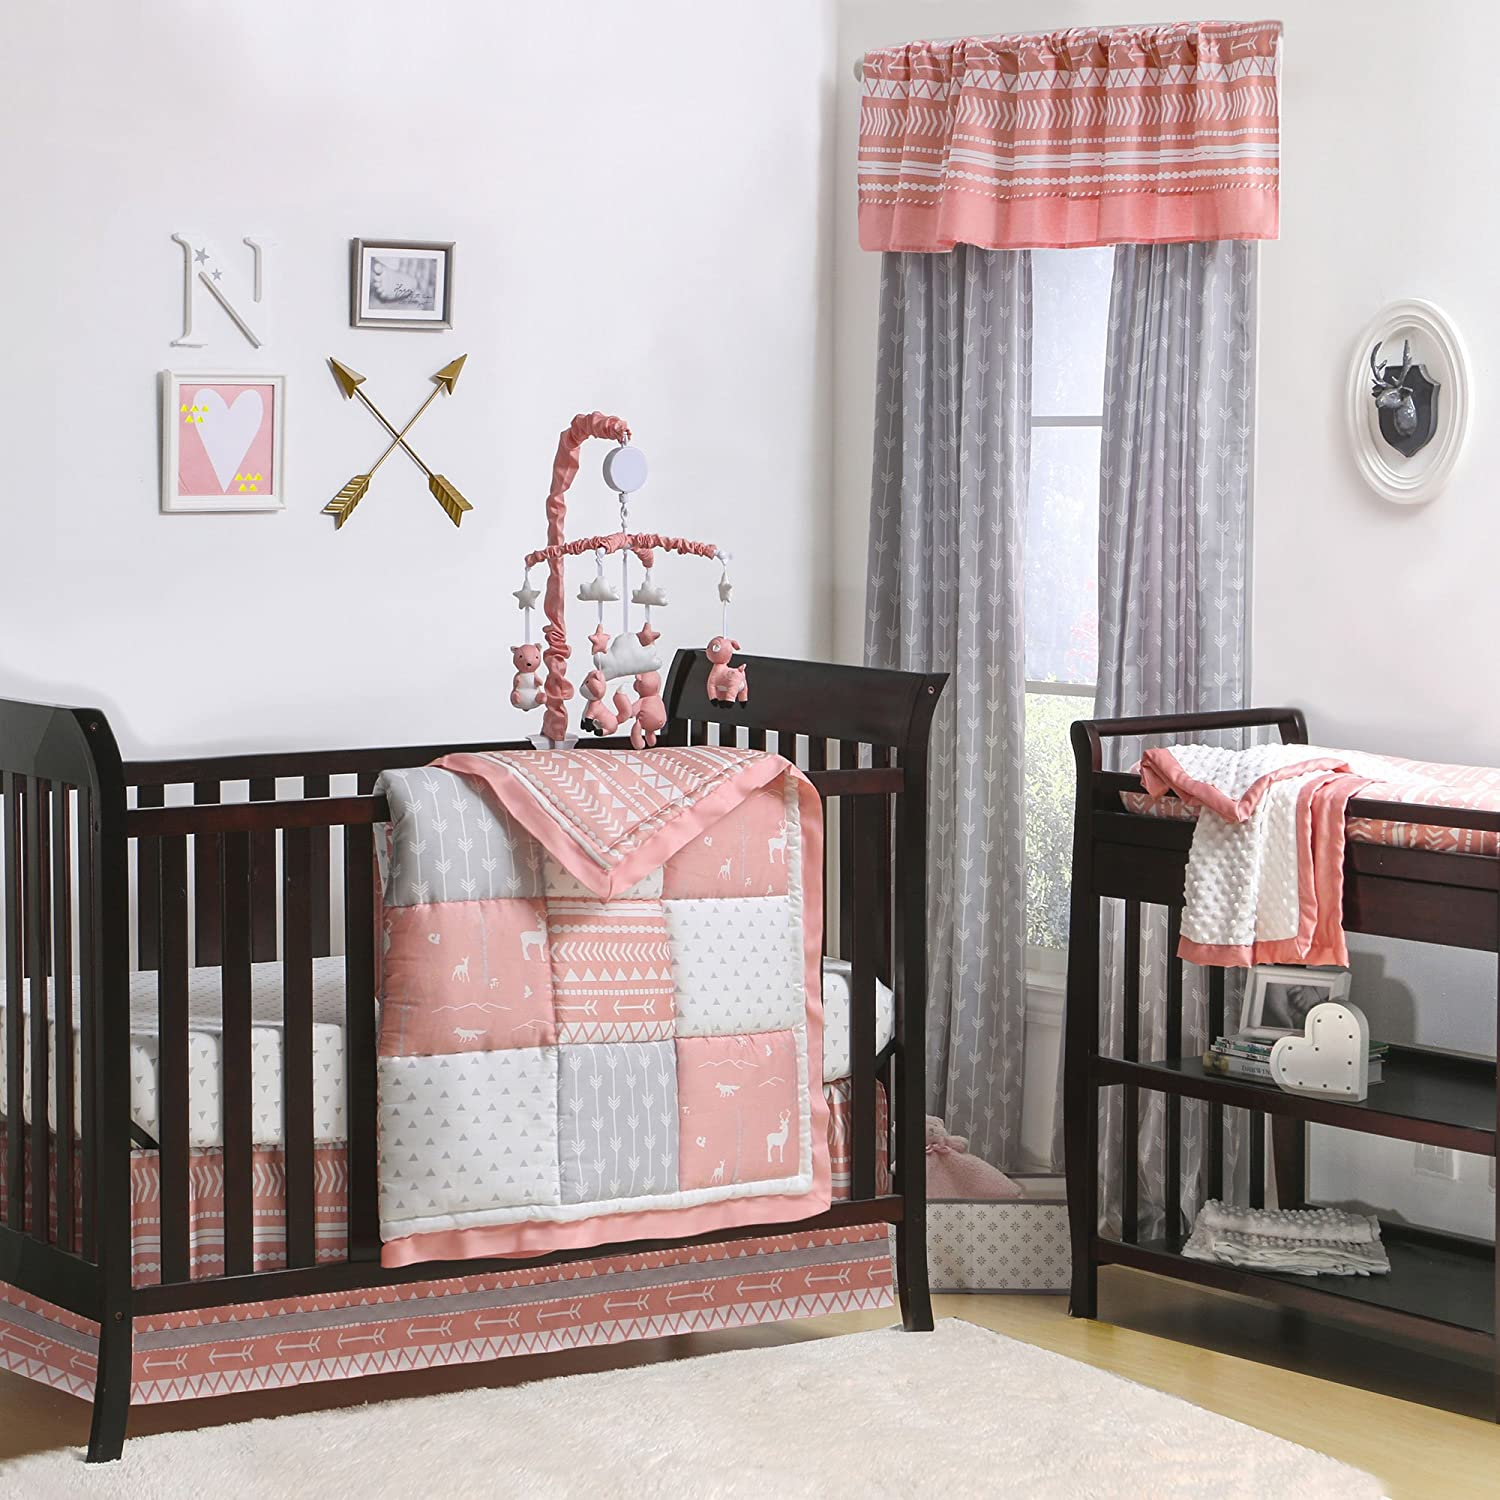 Coral Woodland and Geometric Patchwork 4 Piece Crib Bedding by The Peanut Shell by The Peanut Shell   B01HQR8I4O